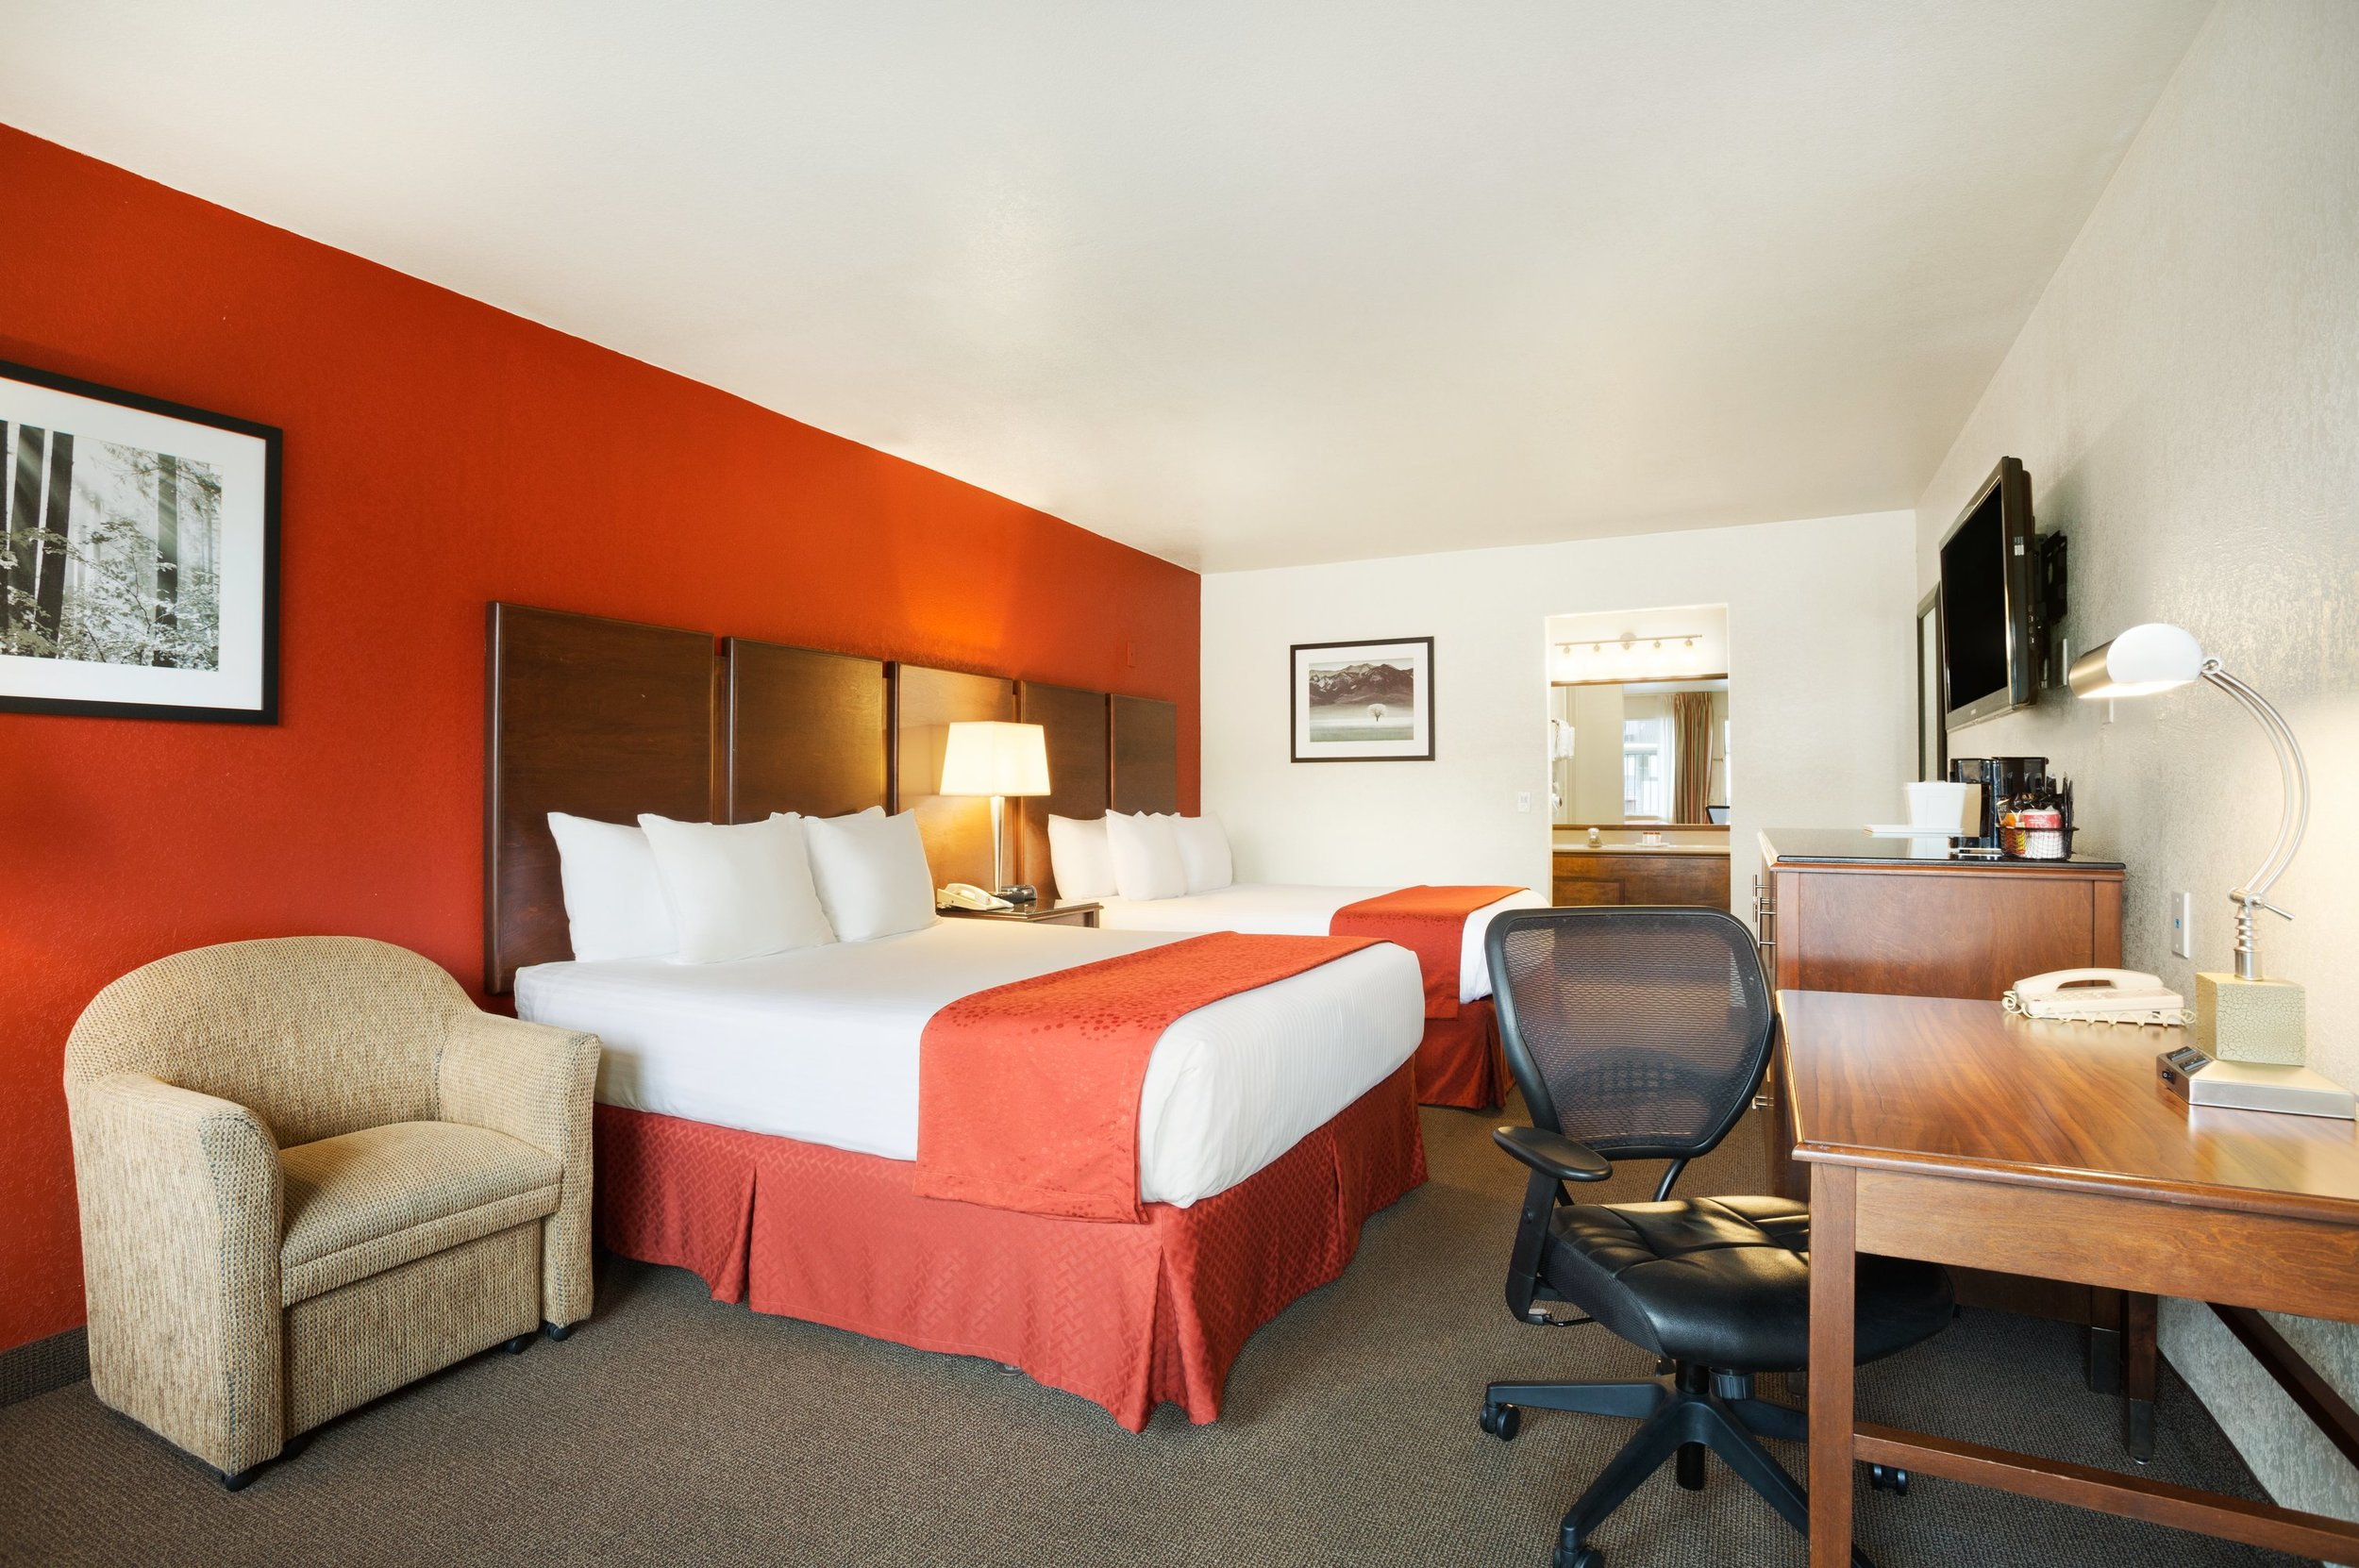 Business class two queen - For guests in search of a little extra space to spread out and make themselves at home, look no further than our Business Class Two Queen Room. With all of the comforts of our Standard Two Queen Room, this elevated guest room features an activity area with lounge chairs.Max 4 Guests 2 Queen Beds